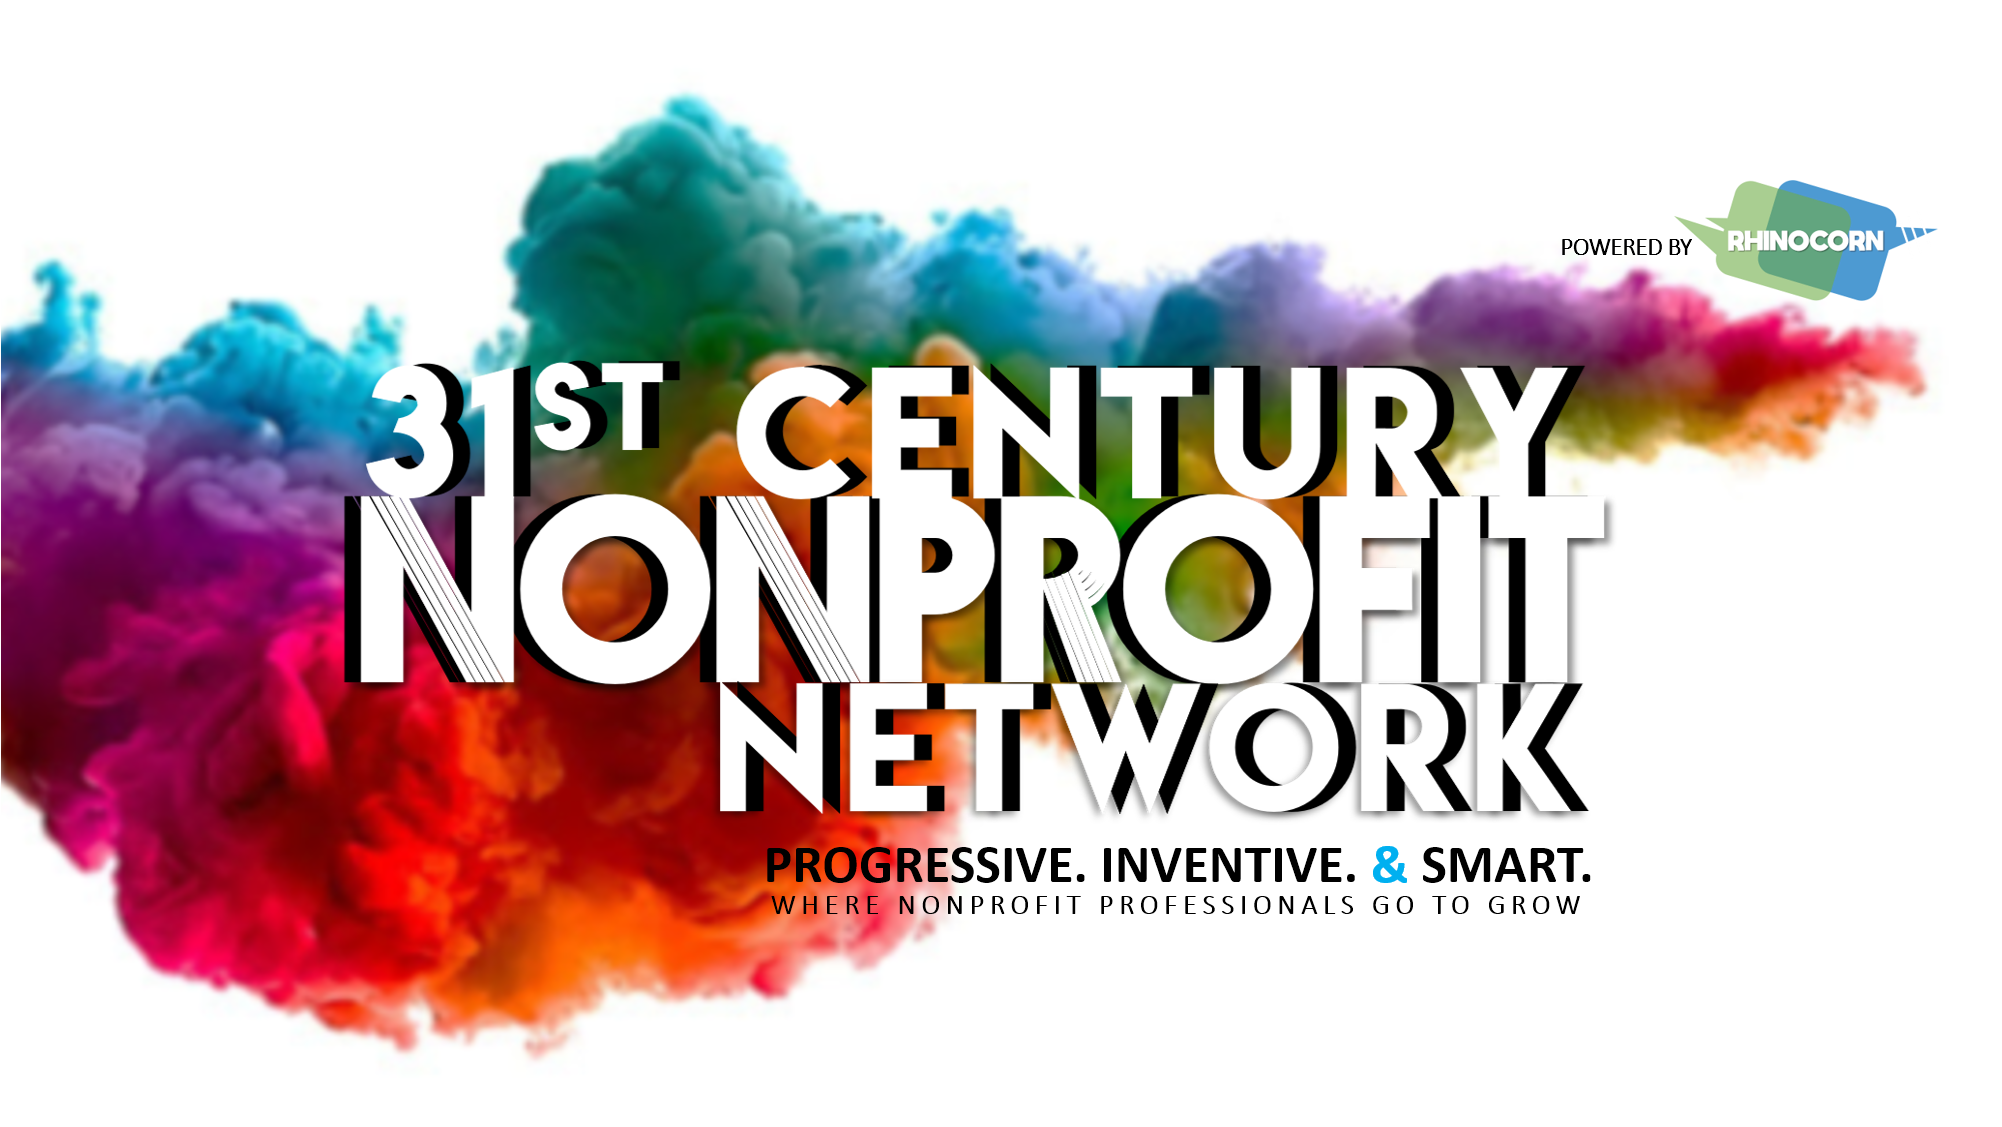 31st Century Nonprofit Network 2019 FB HEADER.png